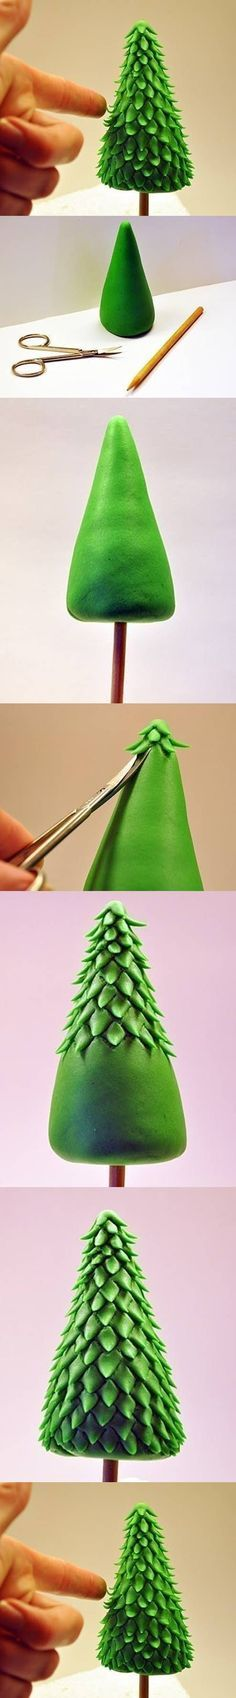 DIY Clay Christmas Tree Internet Tutorial: